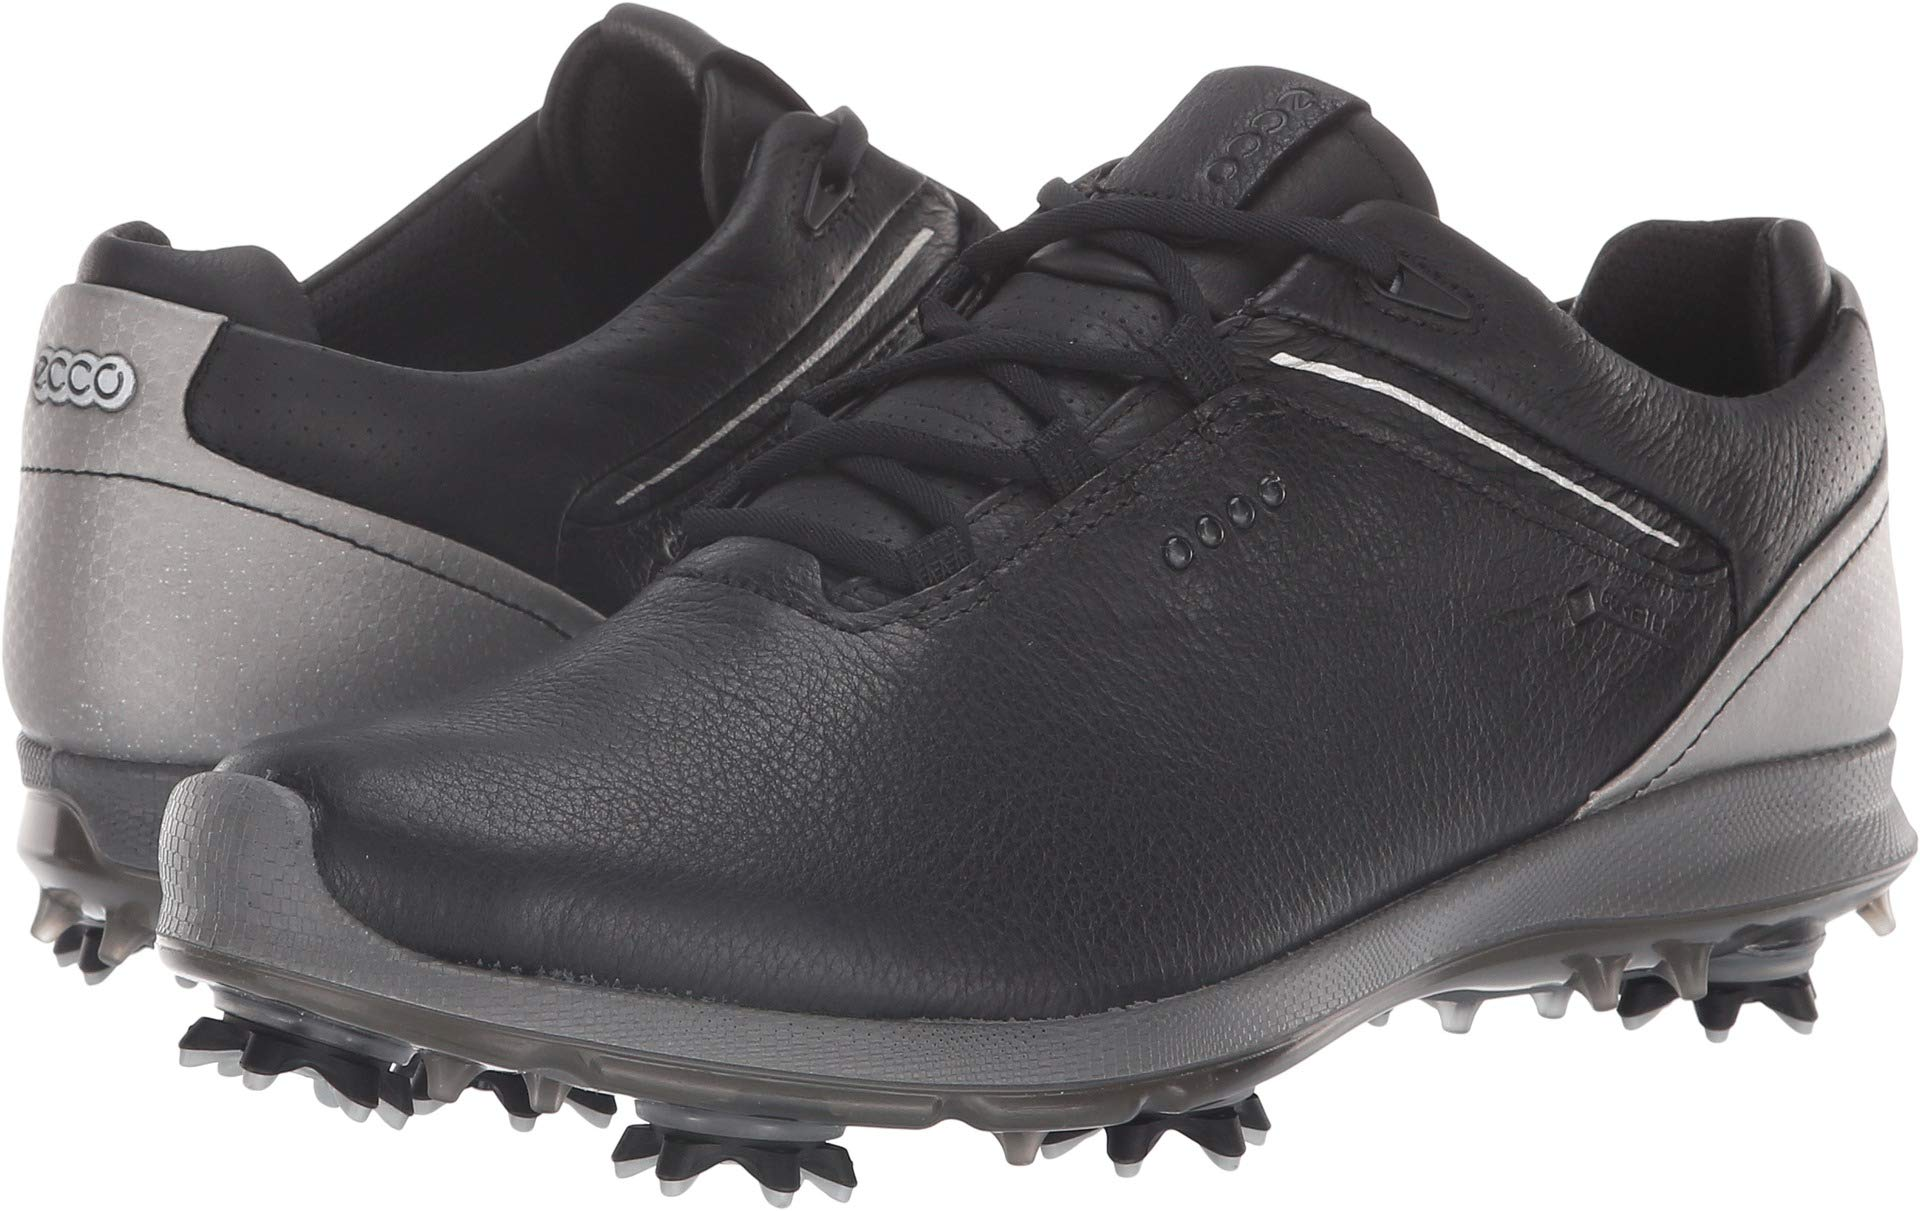 ECCO Women's Biom G 2 Free Gore-TEX Golf Shoe, Black Yak Leather, 8 M US by ECCO